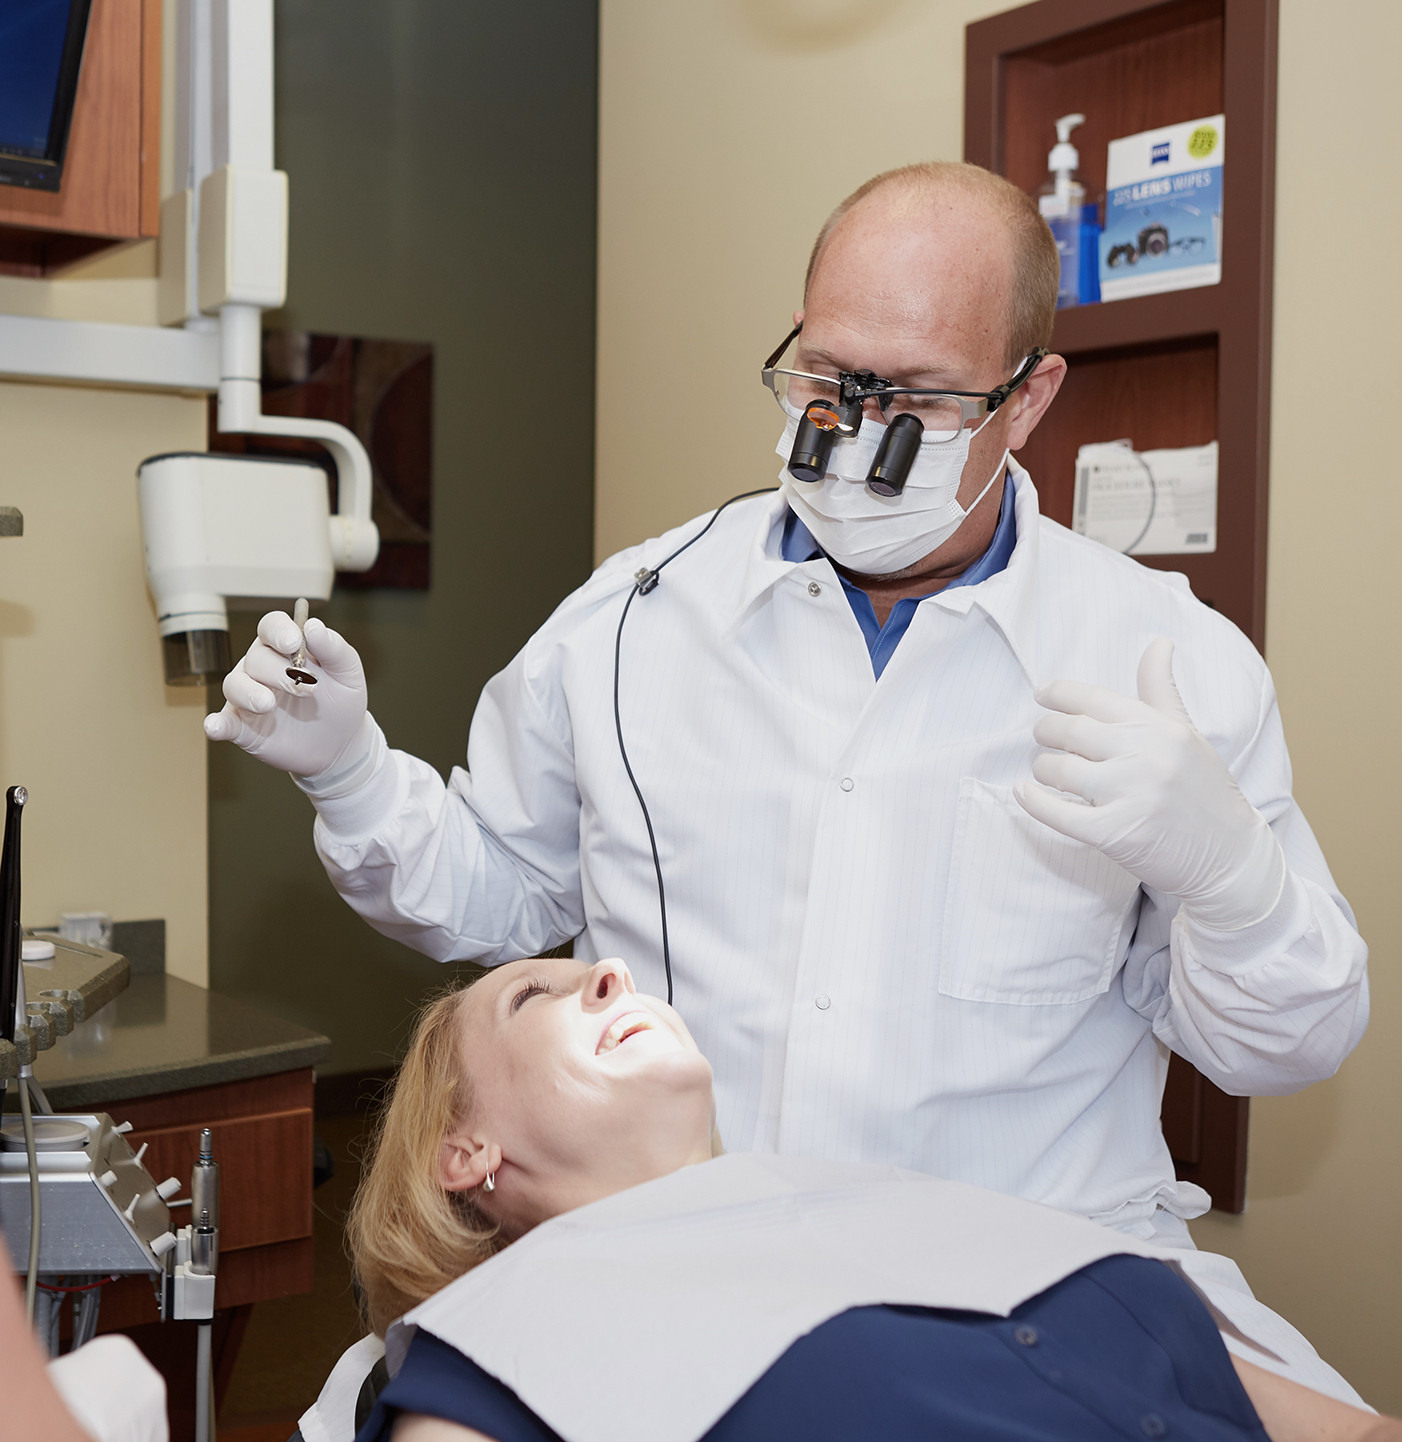 Dr Doug Klein Dentist Office in Grandville MI 49418 - KleinDentistry.com